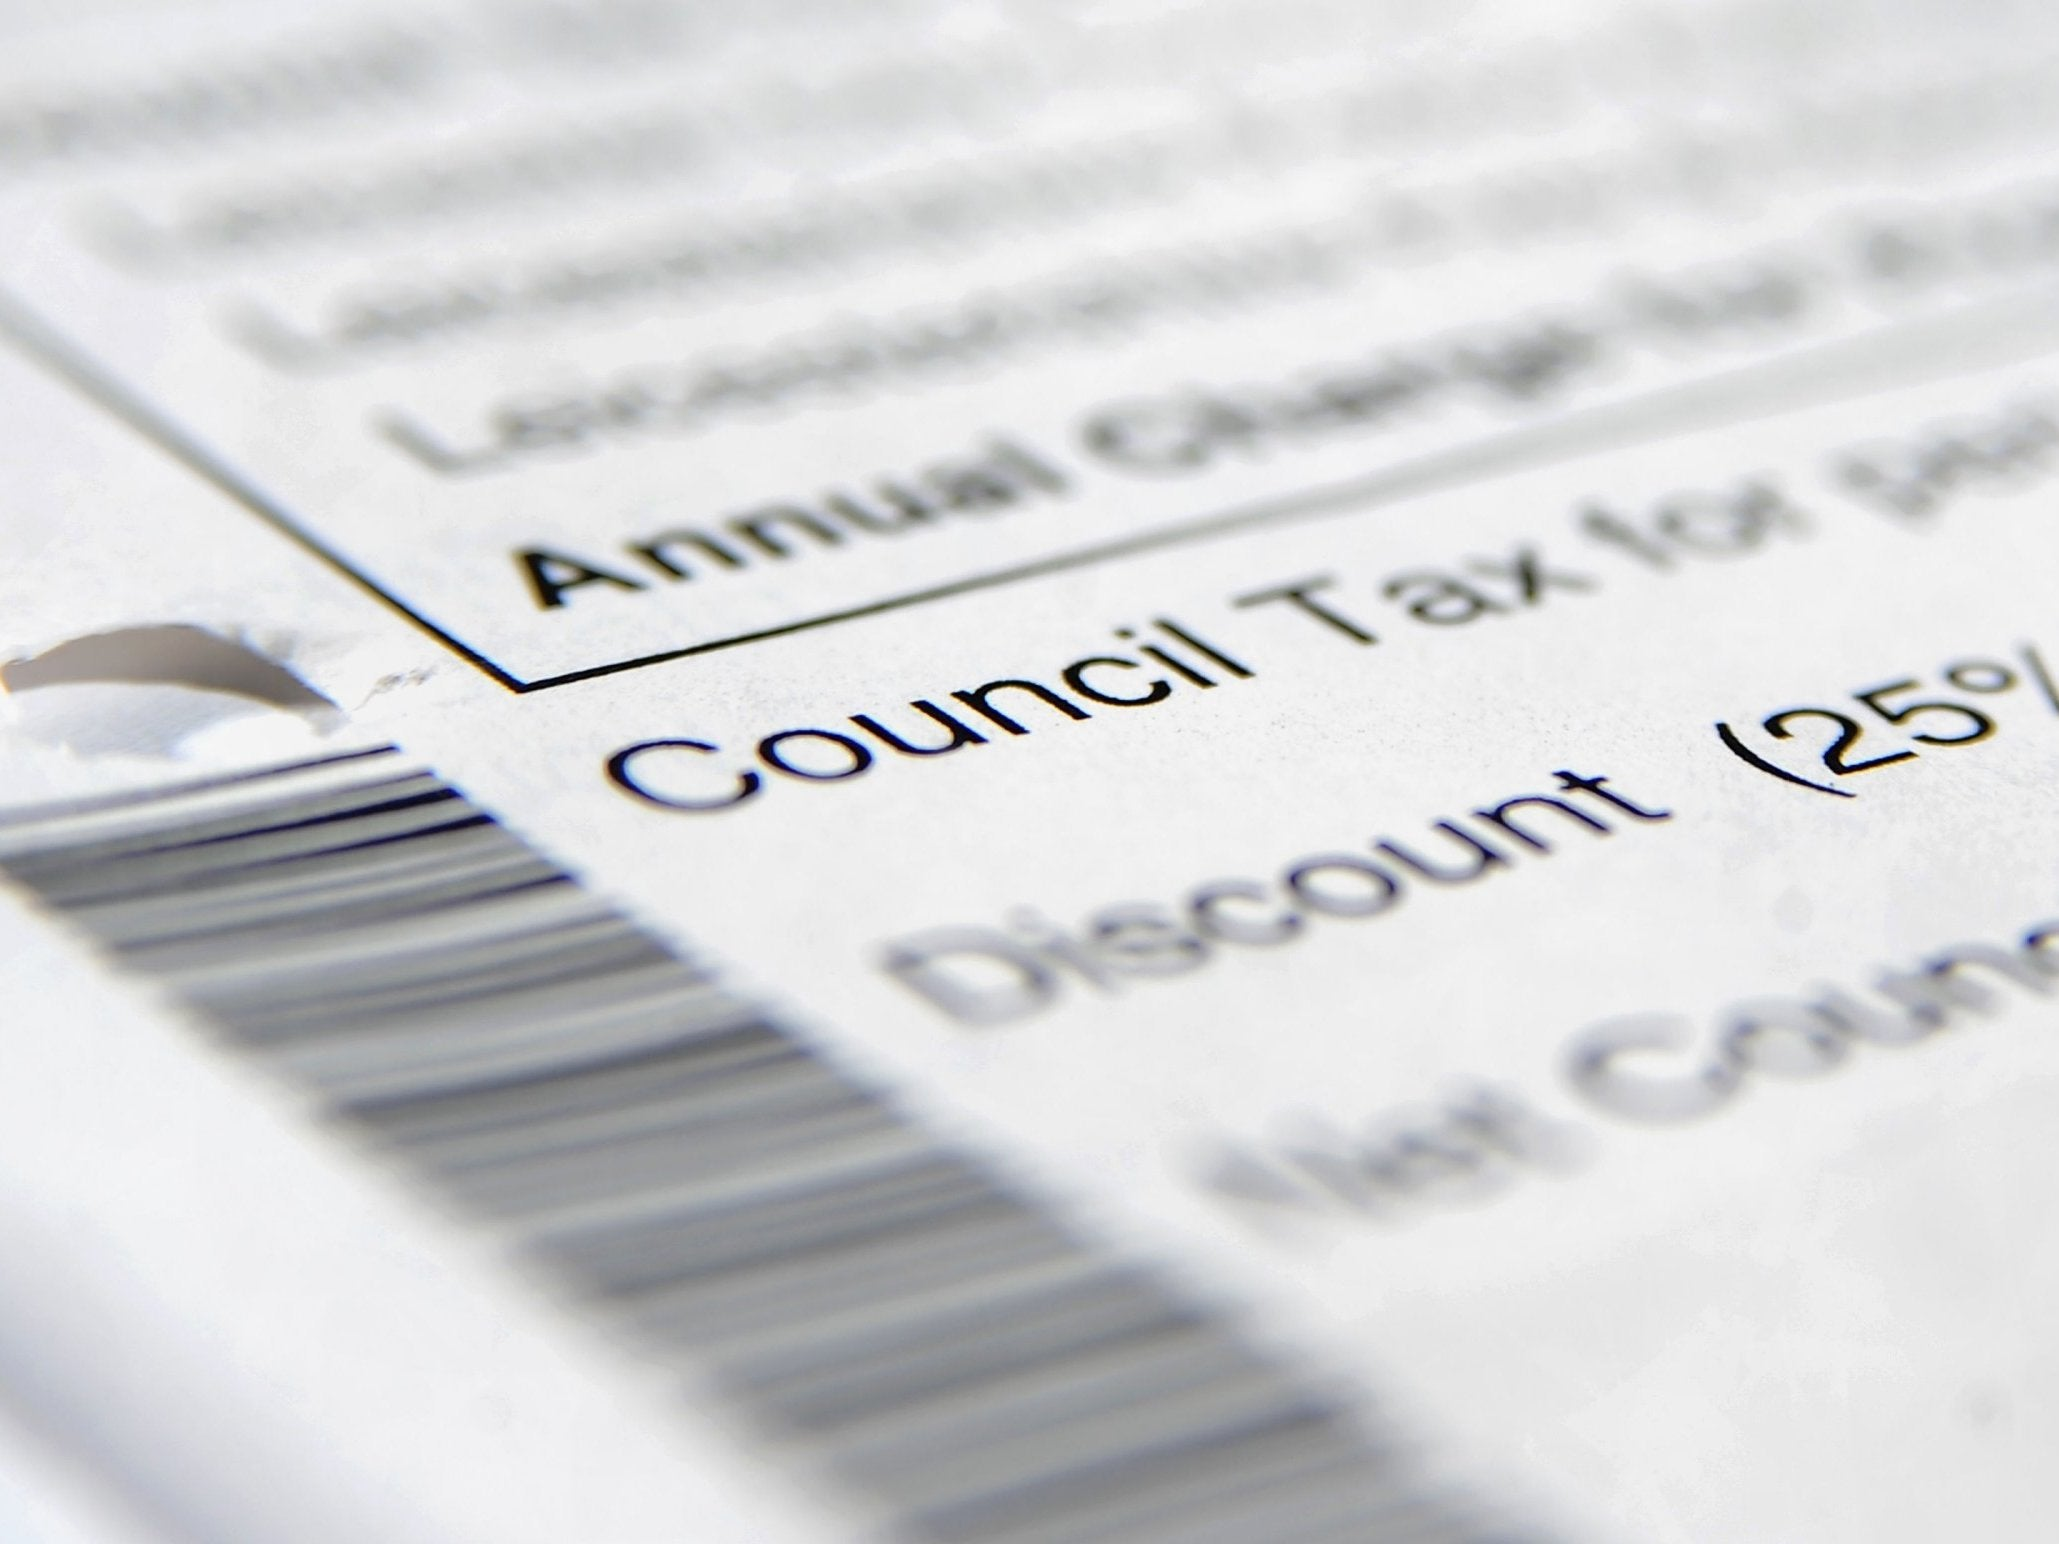 Criminals targeting residents in council tax scam 'barrage', local authorities warn